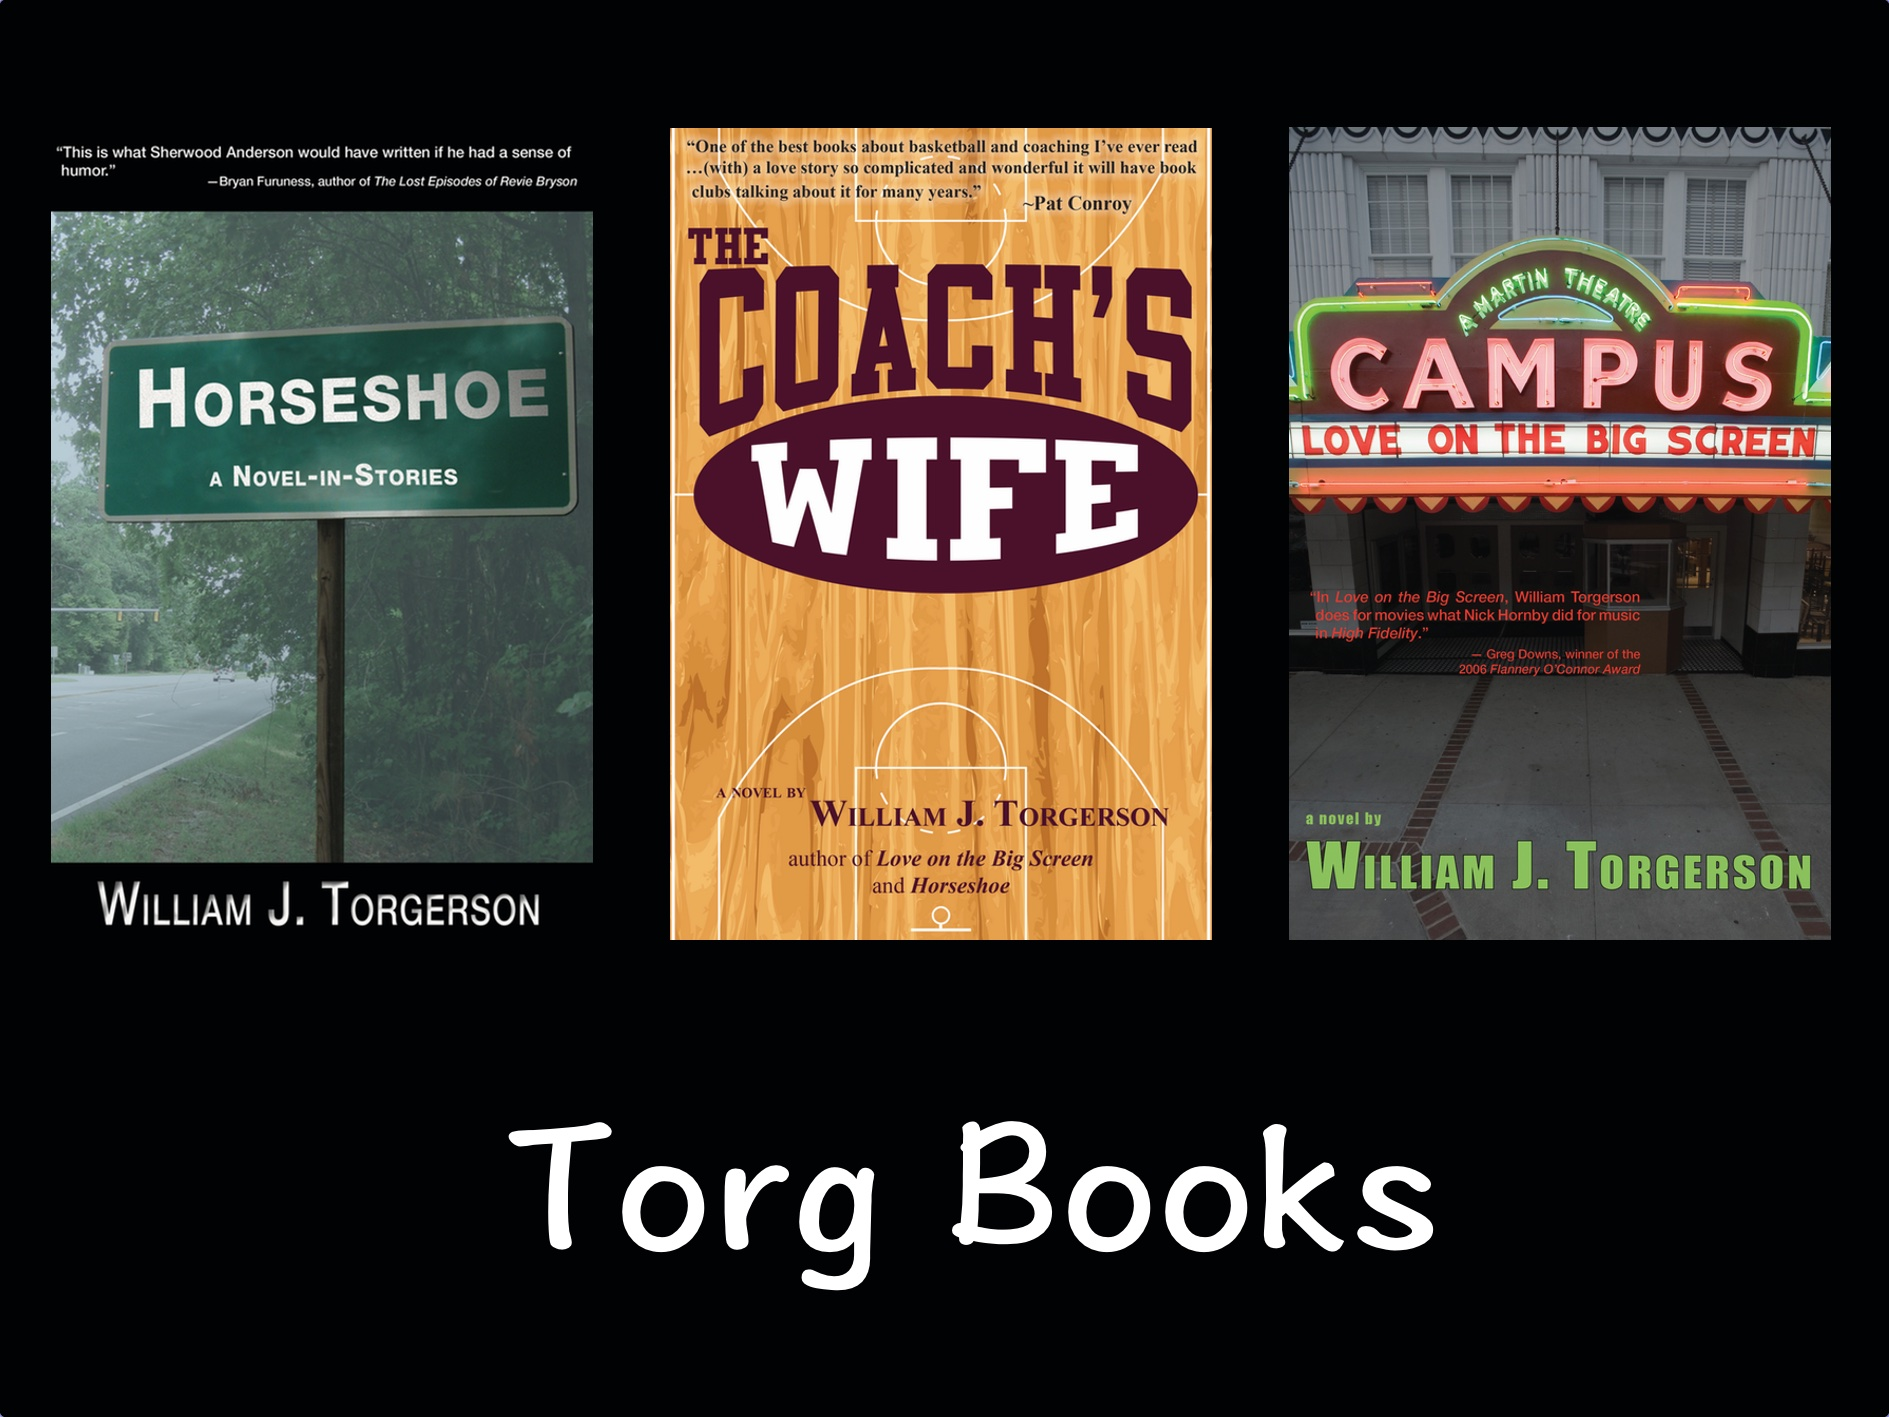 Bill Torgerson novels basketball